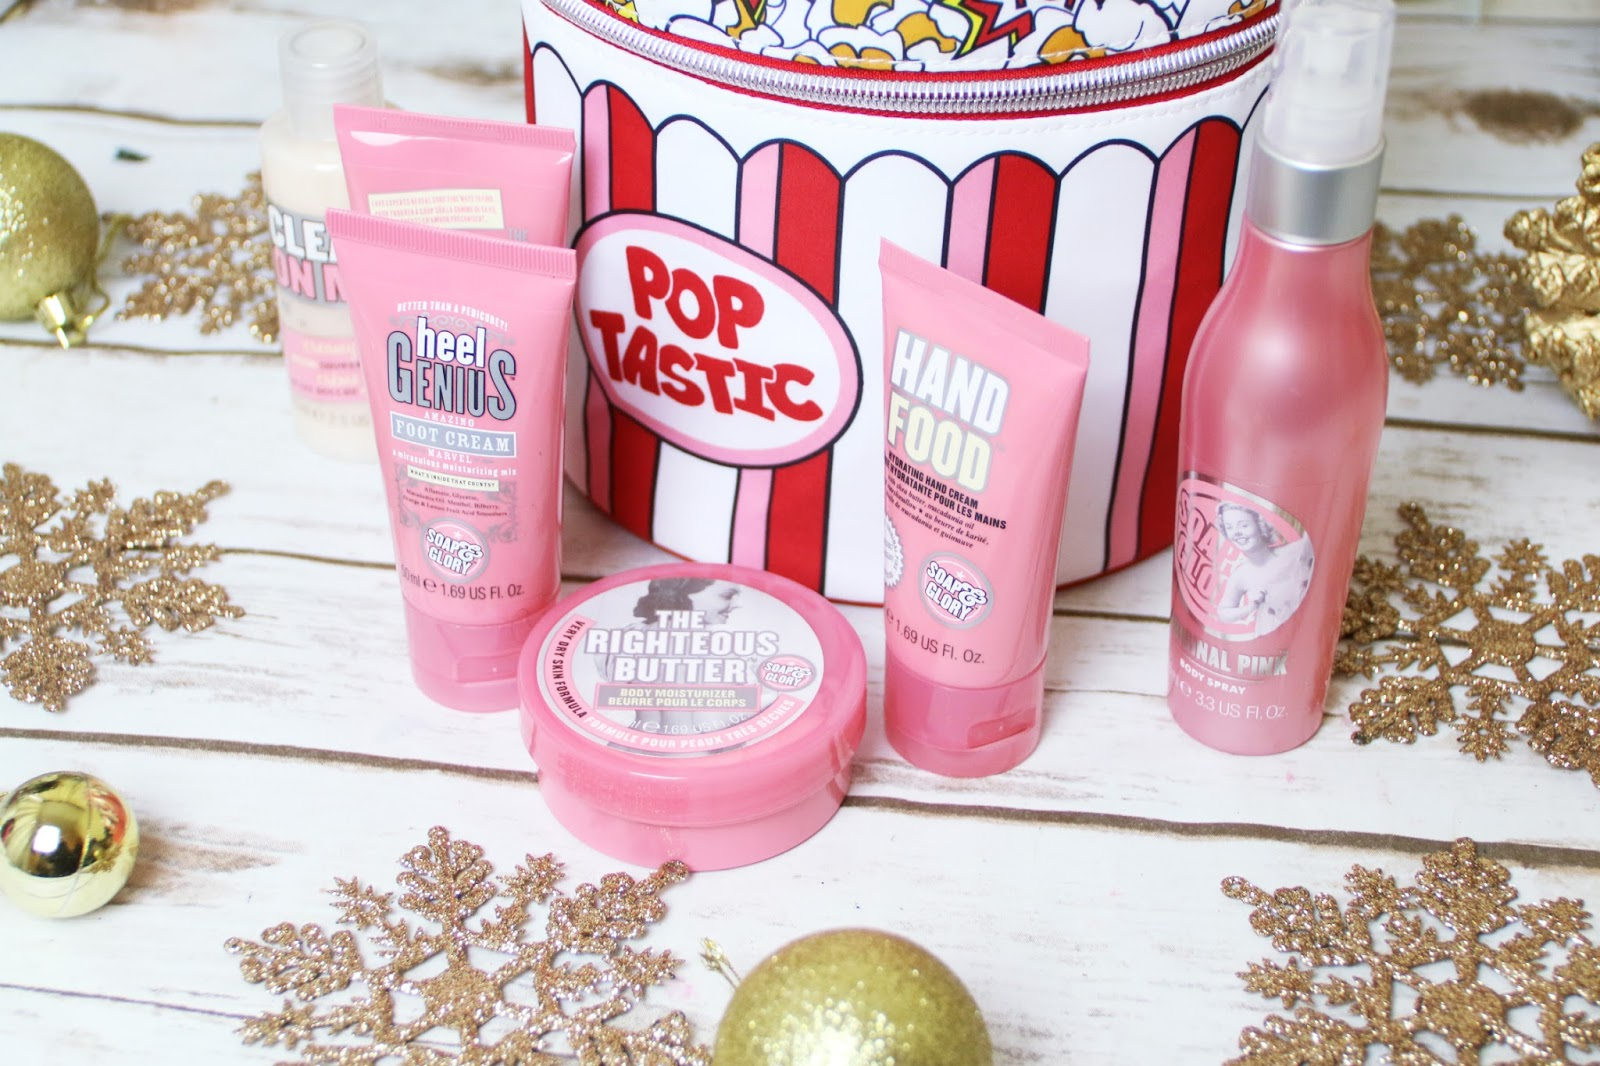 Soap And Glory Xmas Gift Set The Best Christmas Gifts Ampamp Irresistibubble Last Minute Guide Katie Snooks